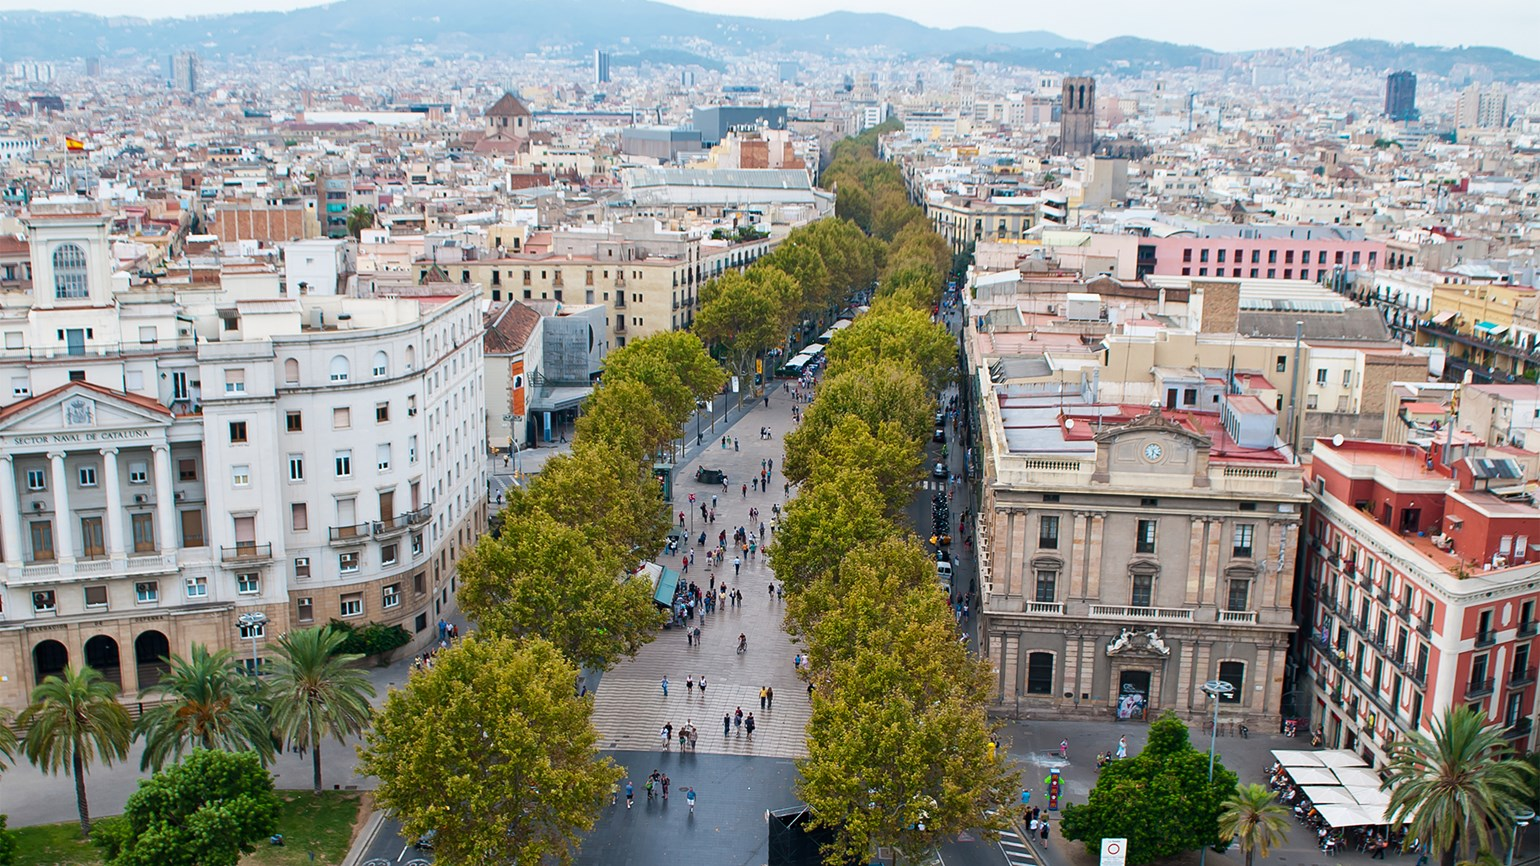 Barcelona hotel occupancy drops